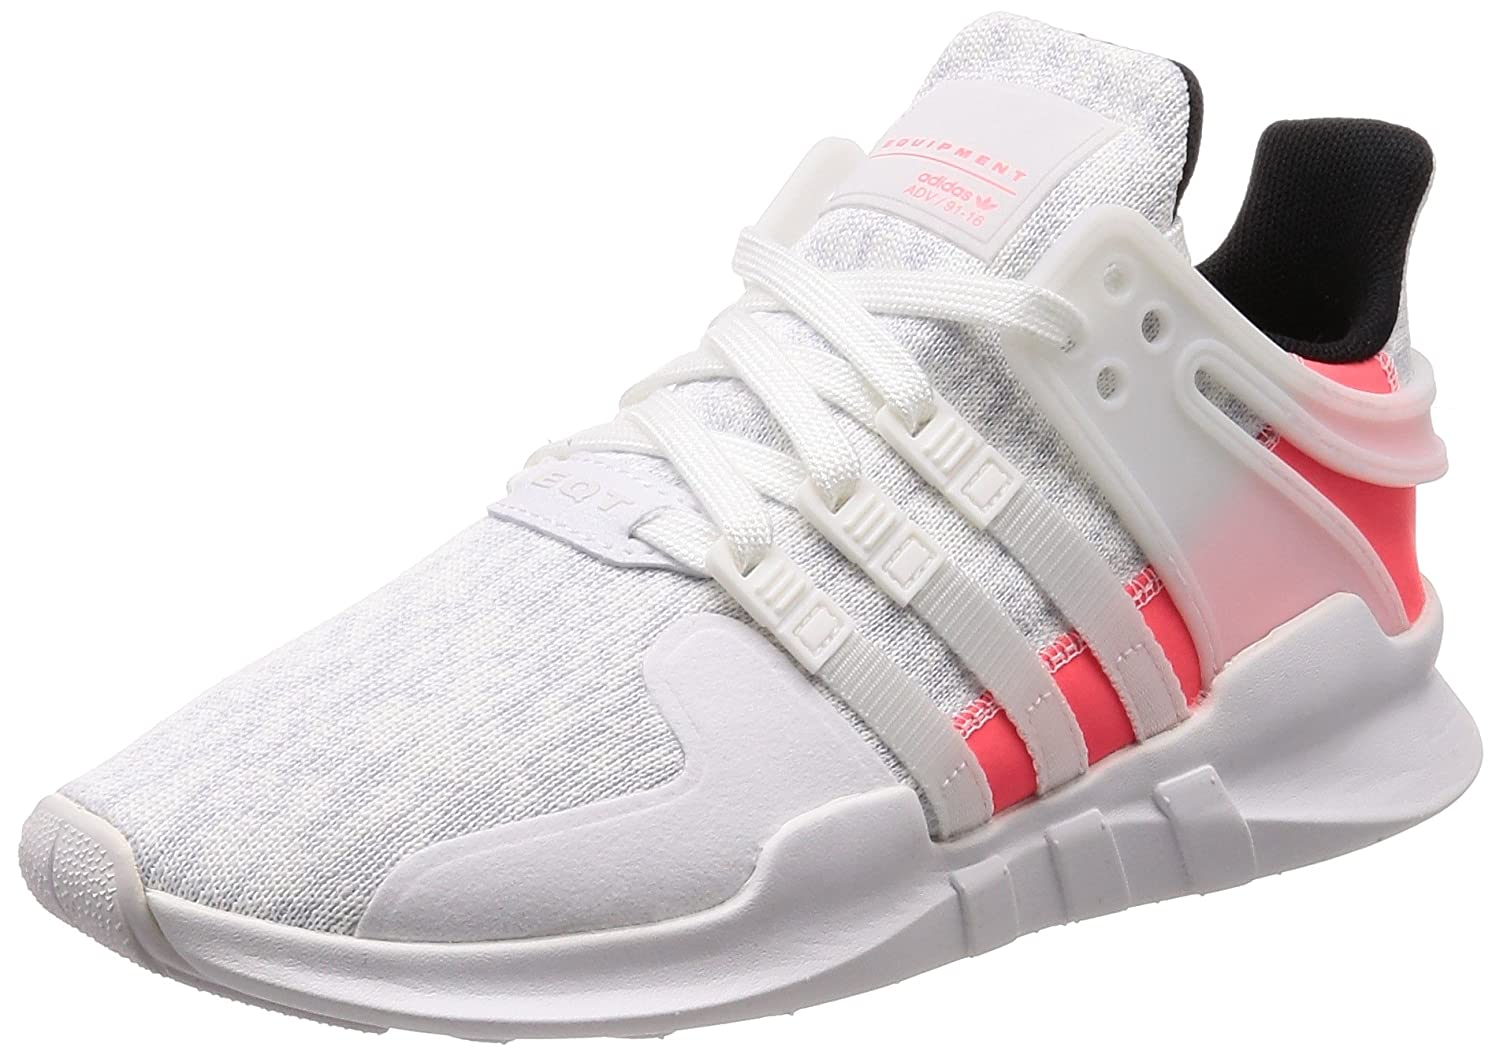 adidas EQT Support ADV, Zapatillas para Hombre: Adidas Originals: Amazon.es: Zapatos y complementos